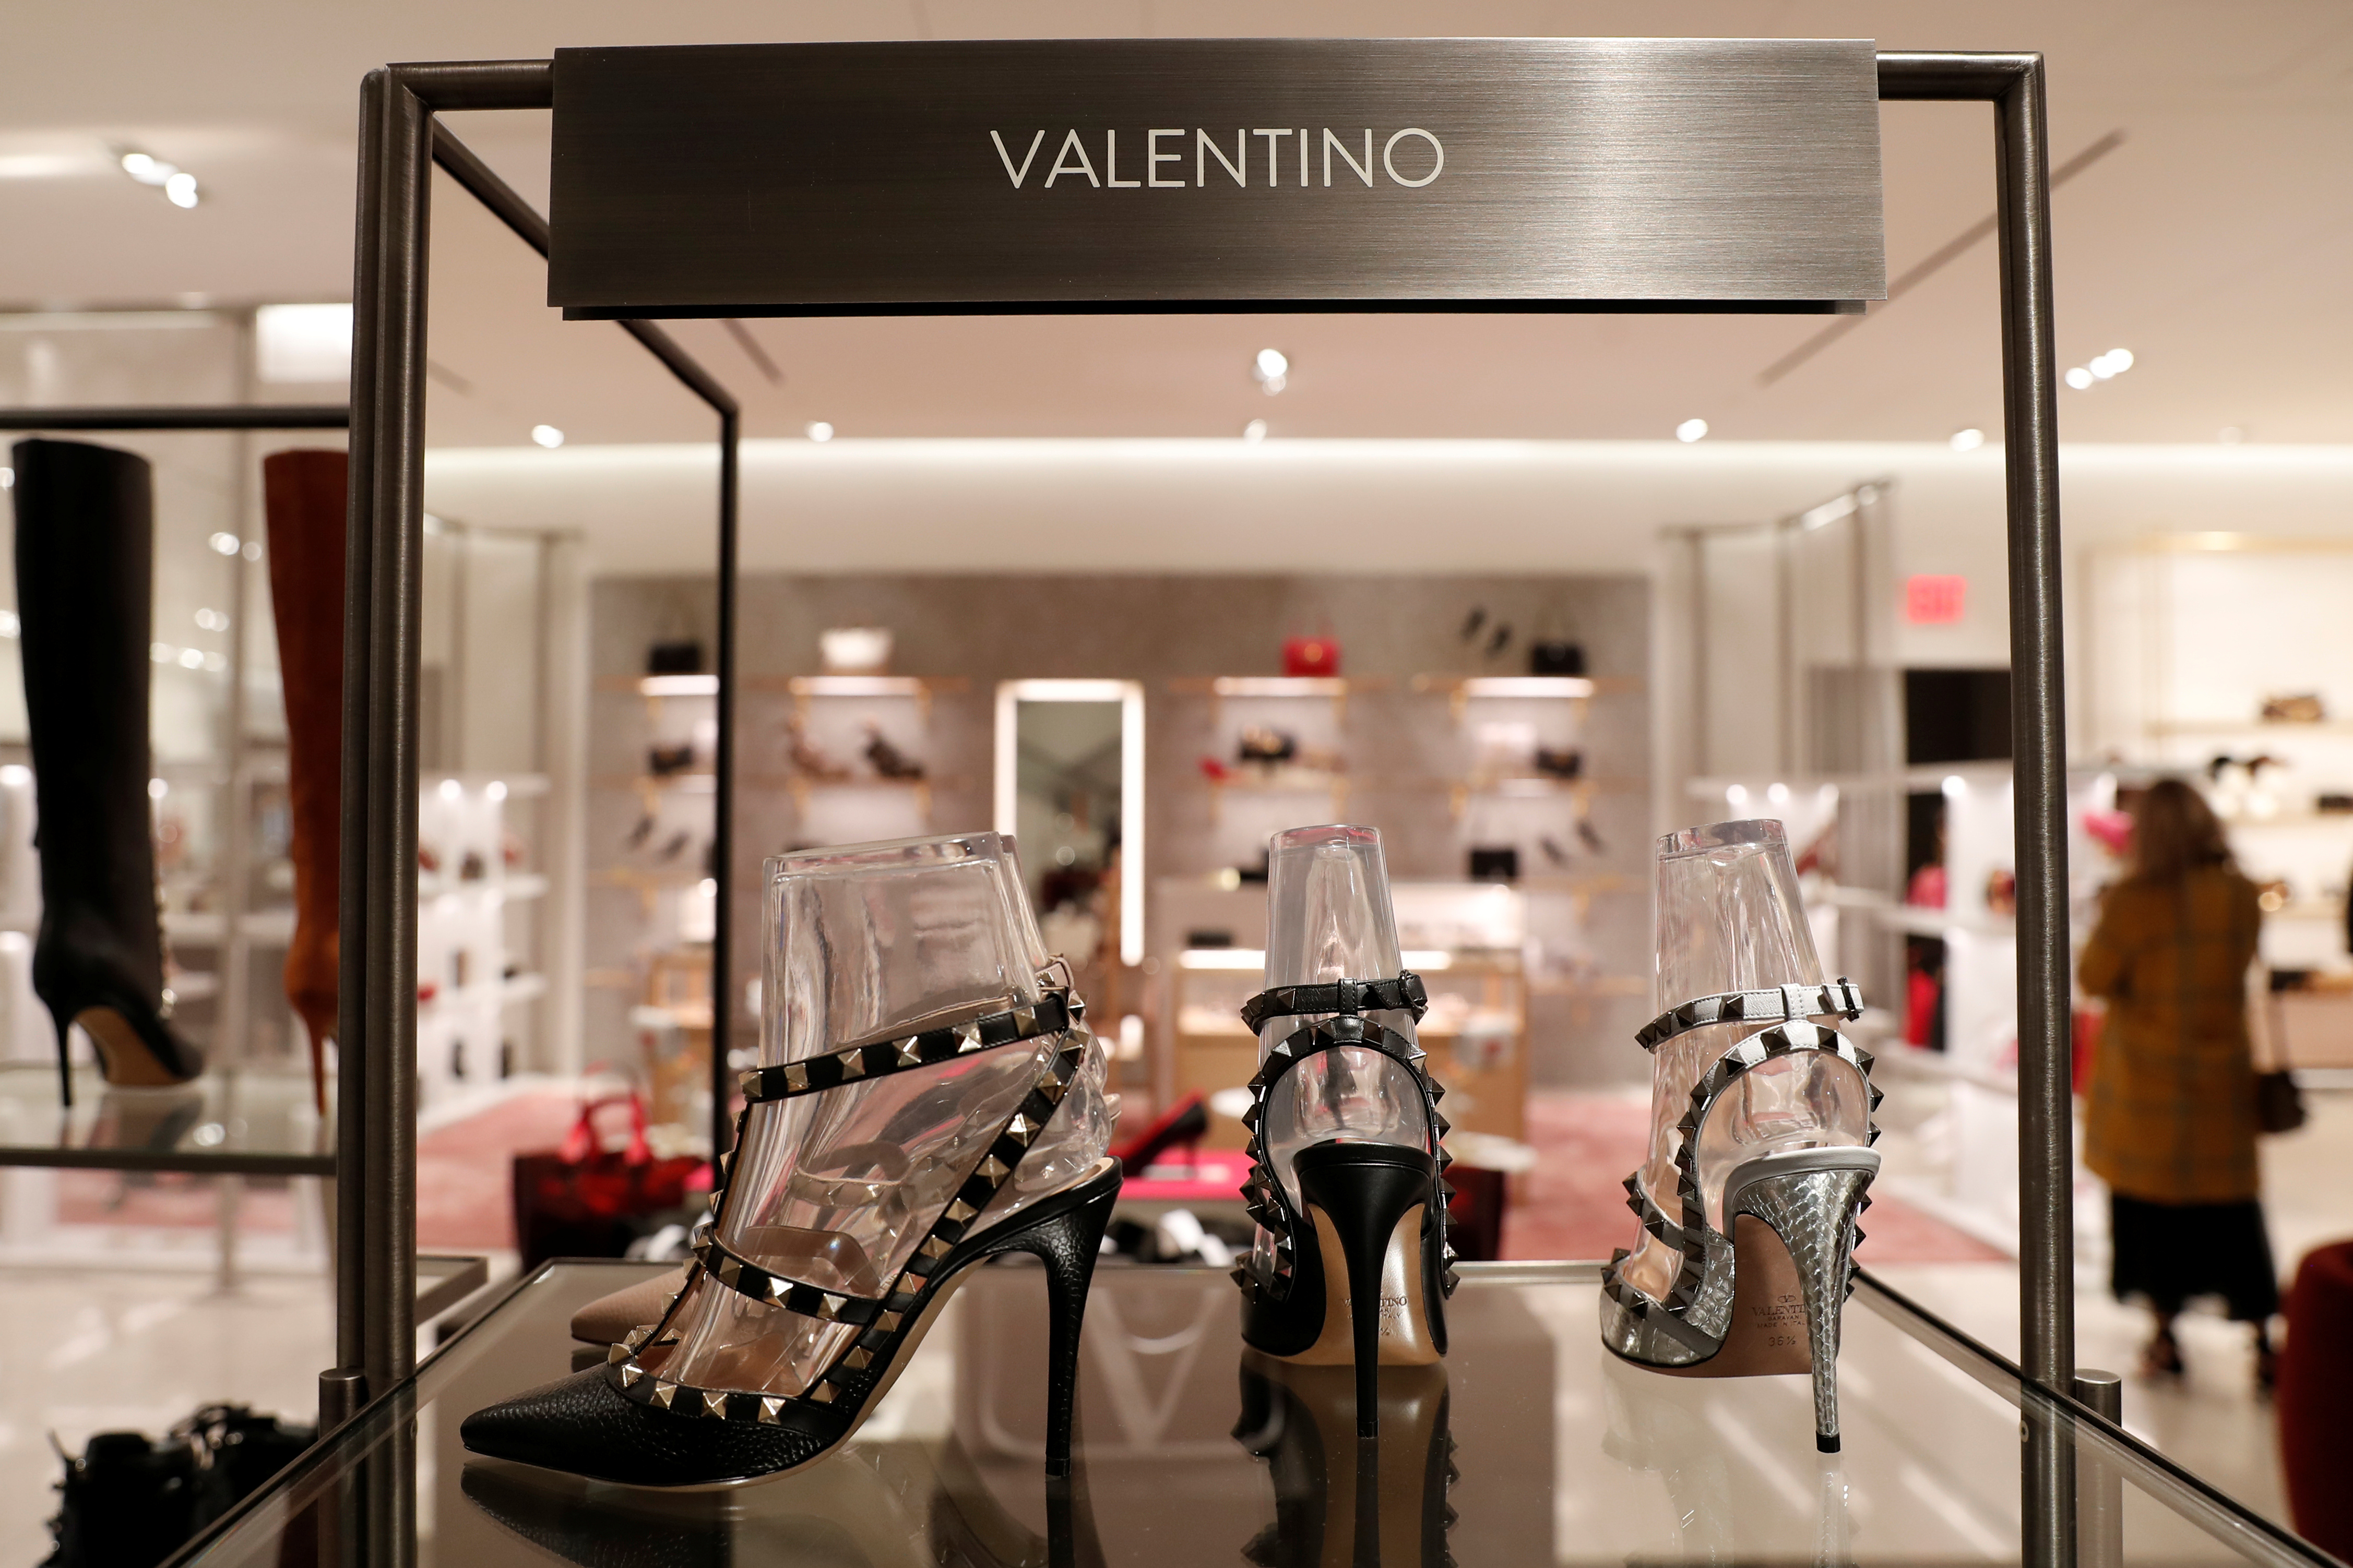 Designer Valentino shoes are seen on display at the Nordstrom flagship store is seen during a media preview in New York, U.S., October 21, 2019. REUTERS/Shannon Stapleton